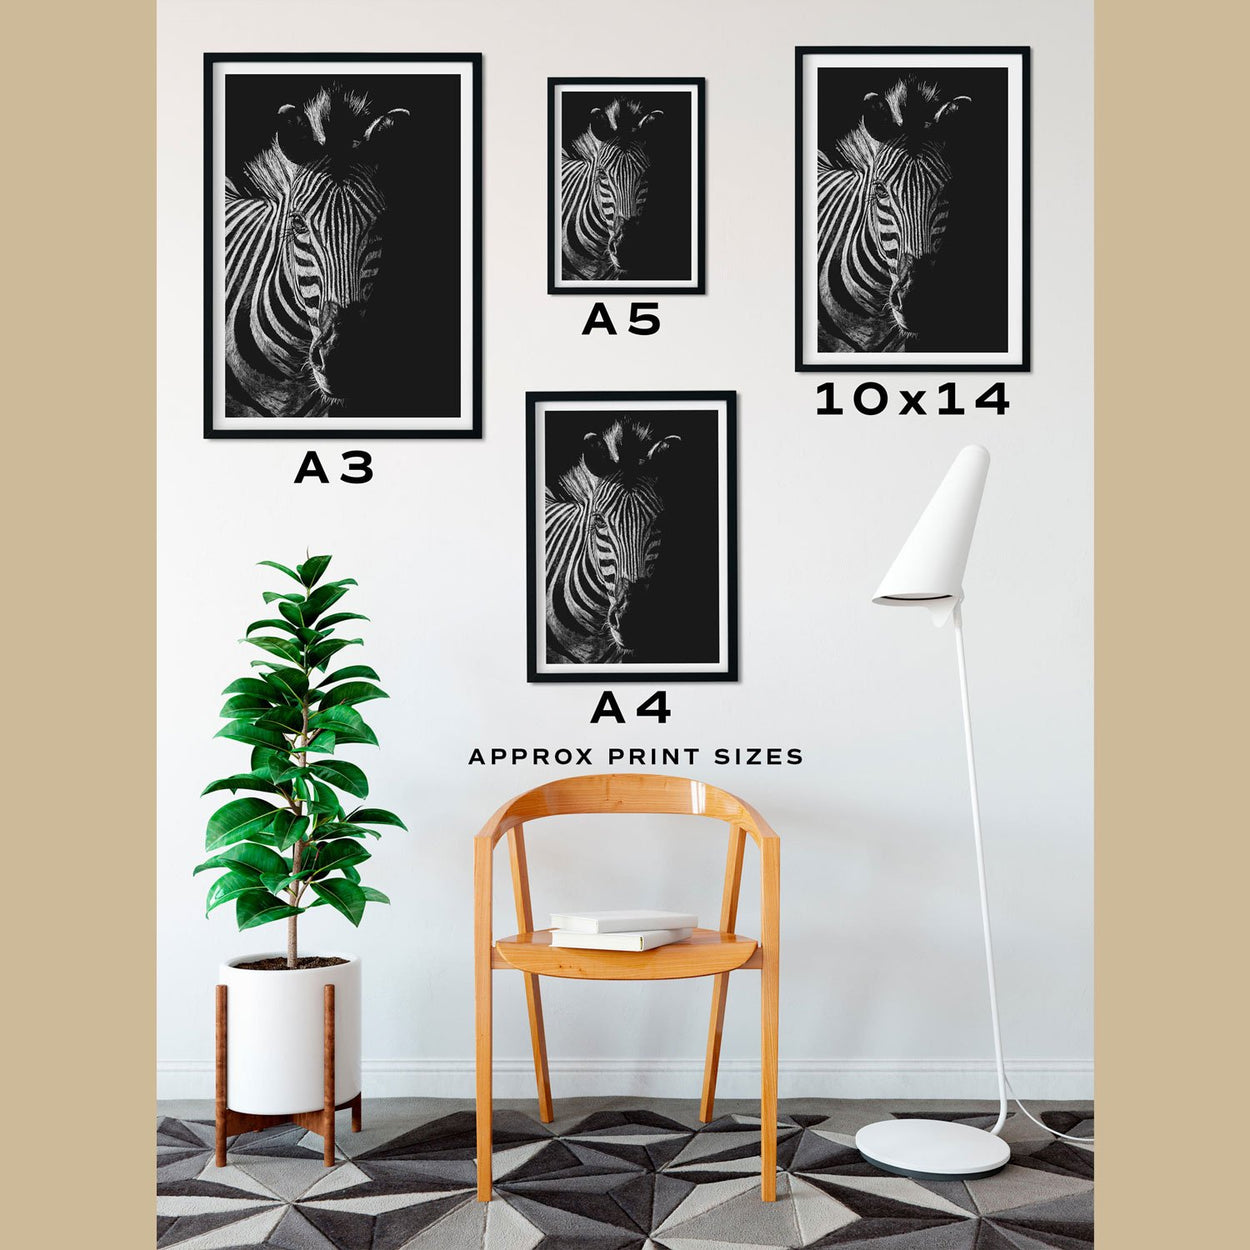 Zebra Wall Art Prints Size Comparison - The Thriving Wild